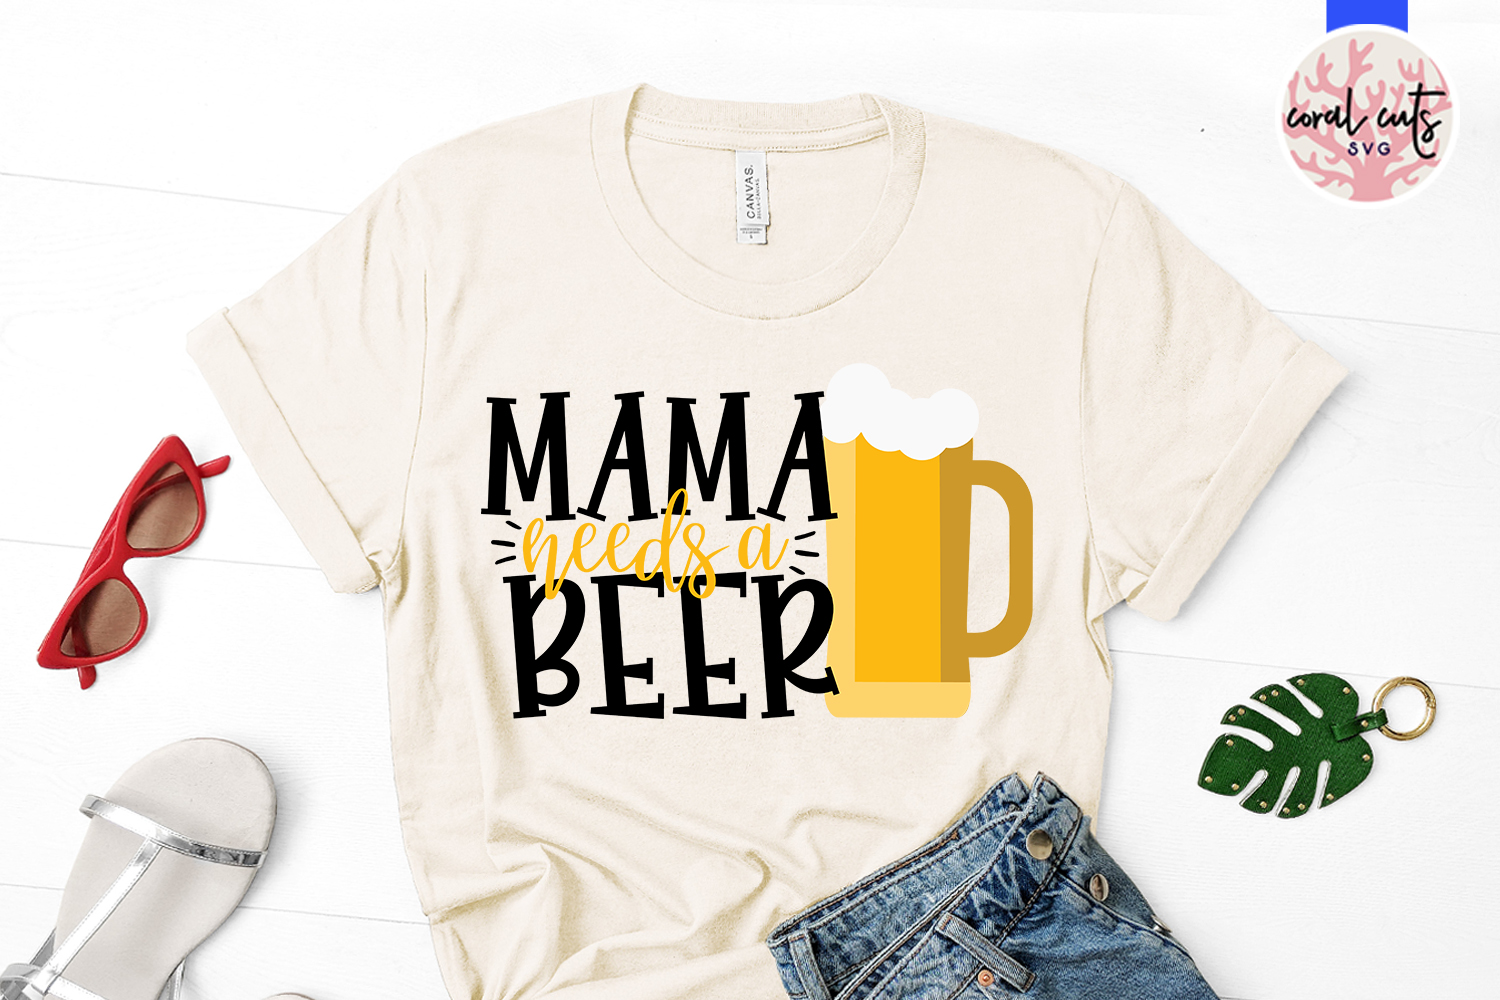 Mama needs a beer - Mother SVG EPS DXF PNG Cutting File example image 2